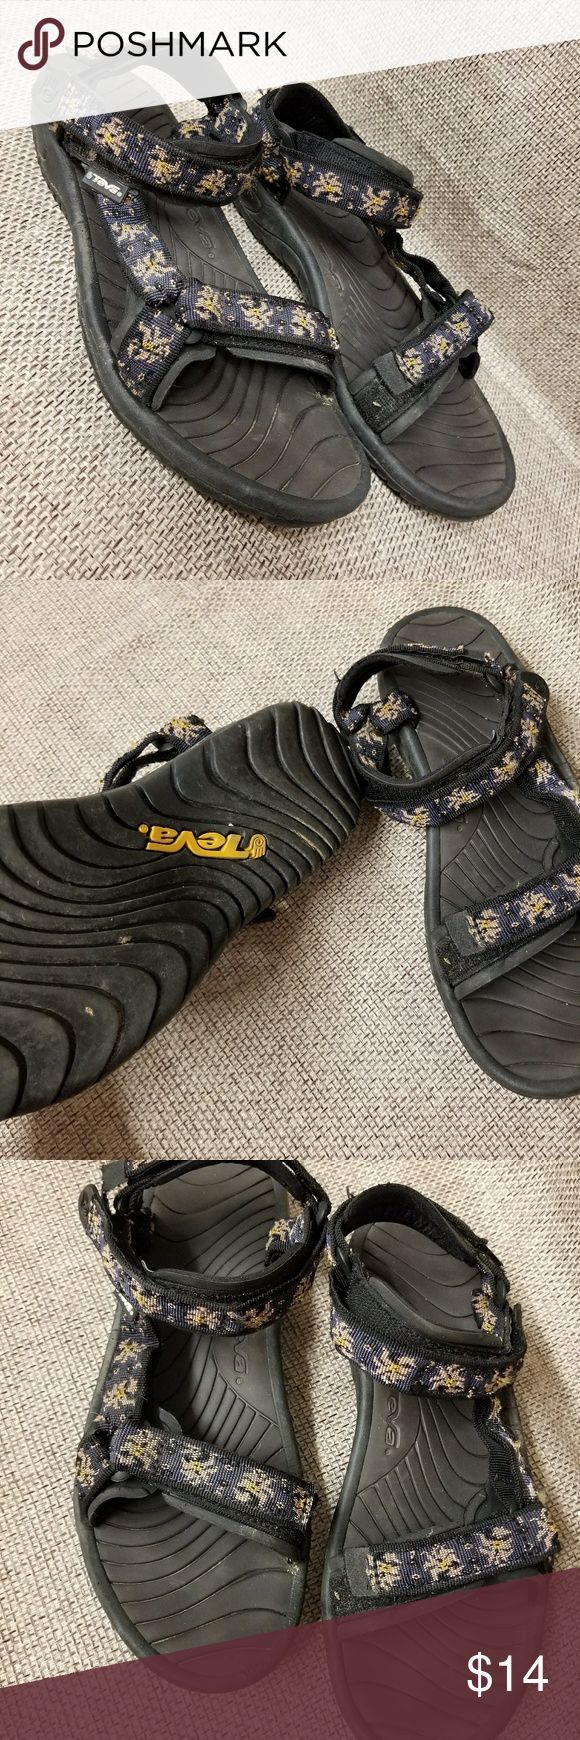 Men's teva Sandals size 10 Pre owned. Non smoking home. #24 Teva Shoes